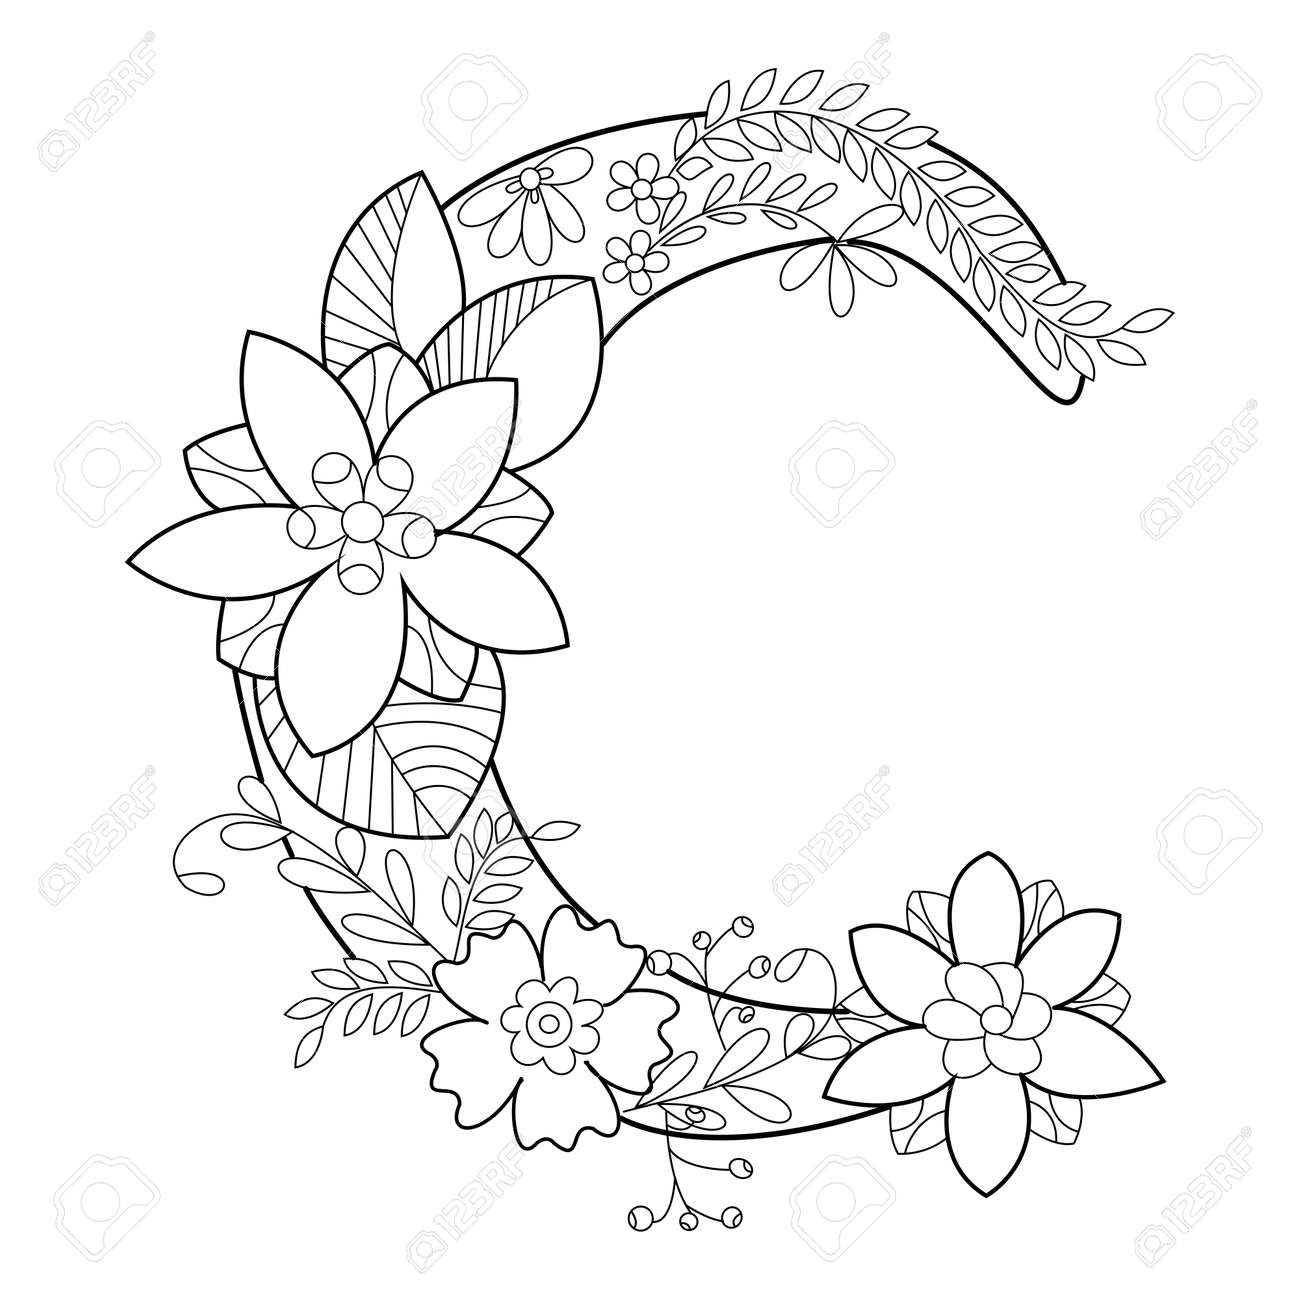 Floral Alphabet Letter Coloring Book For Adults Vector Illustration ...